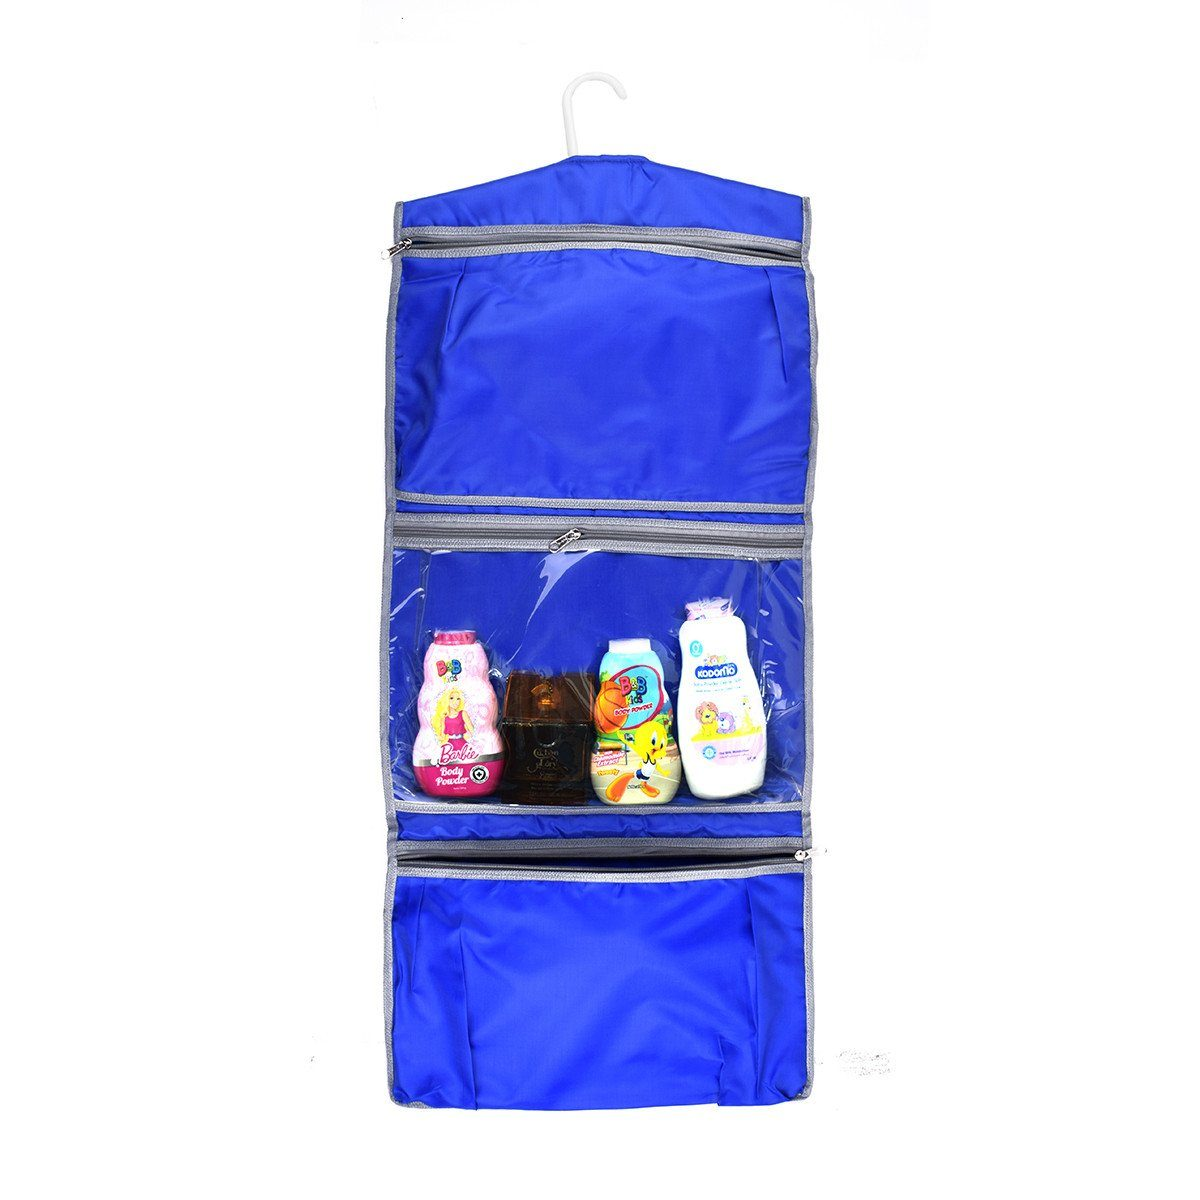 Three Pocket Hanging Toiletry Travel Bag Storage Bag SAK